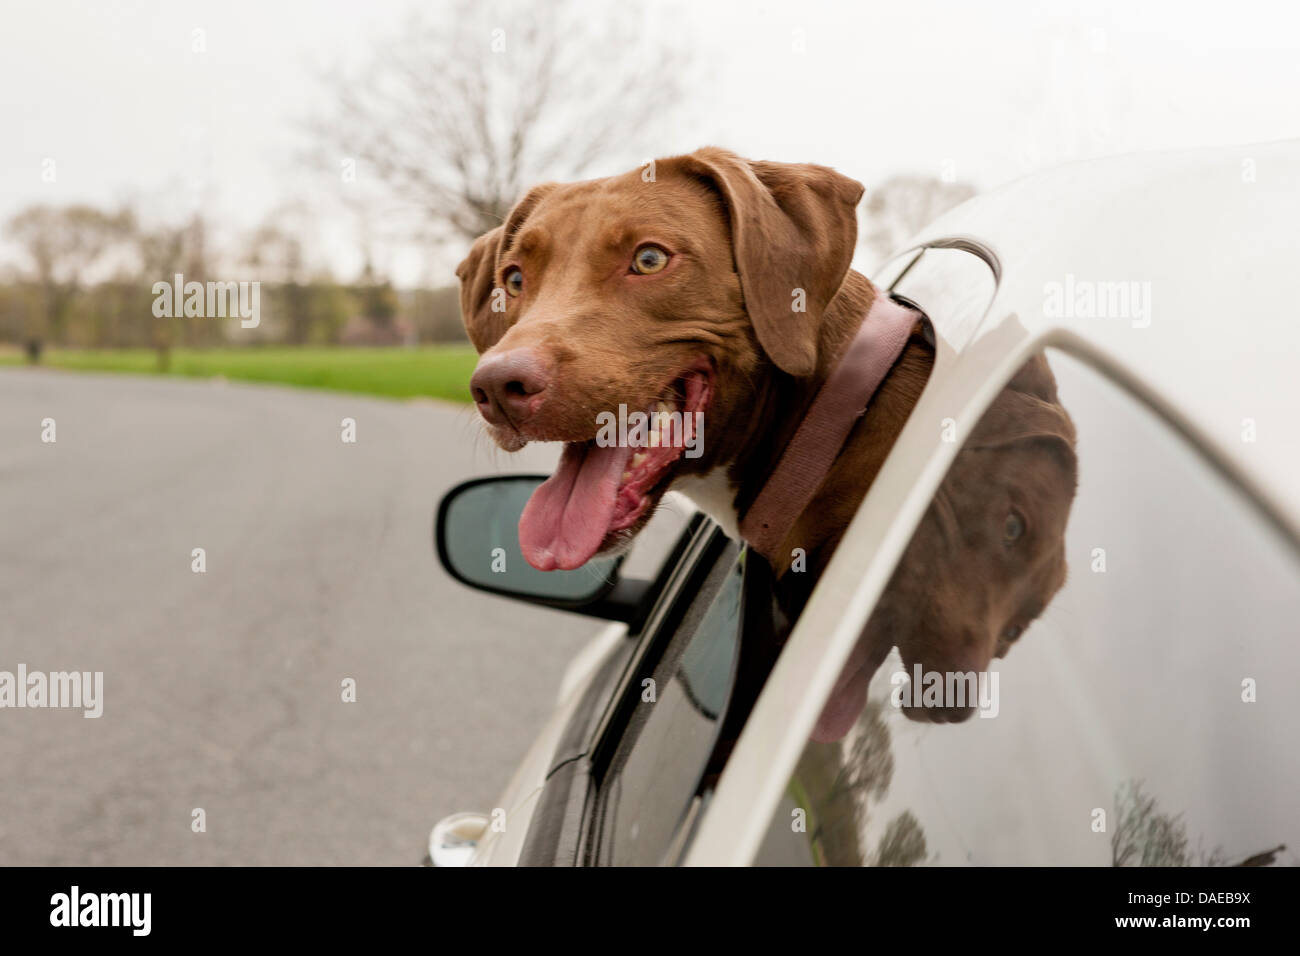 Dog with head sticking out of car window - Stock Image